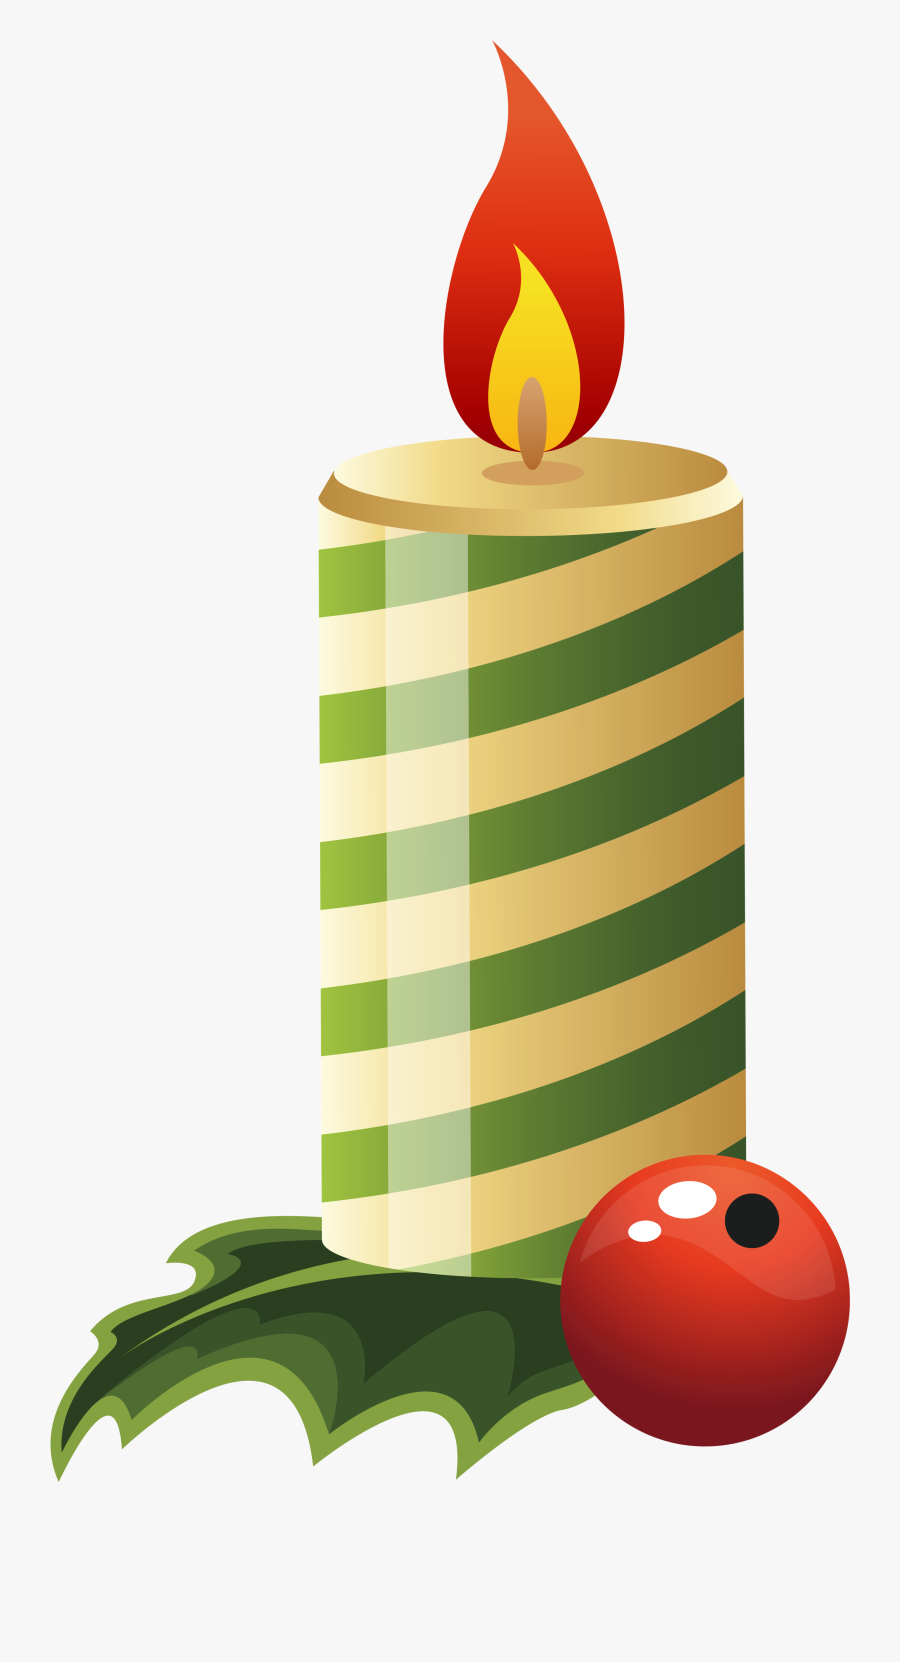 Green Christmas Candle Png Clipart Image - Candle Lamp Clipart Christmas, Transparent Clipart